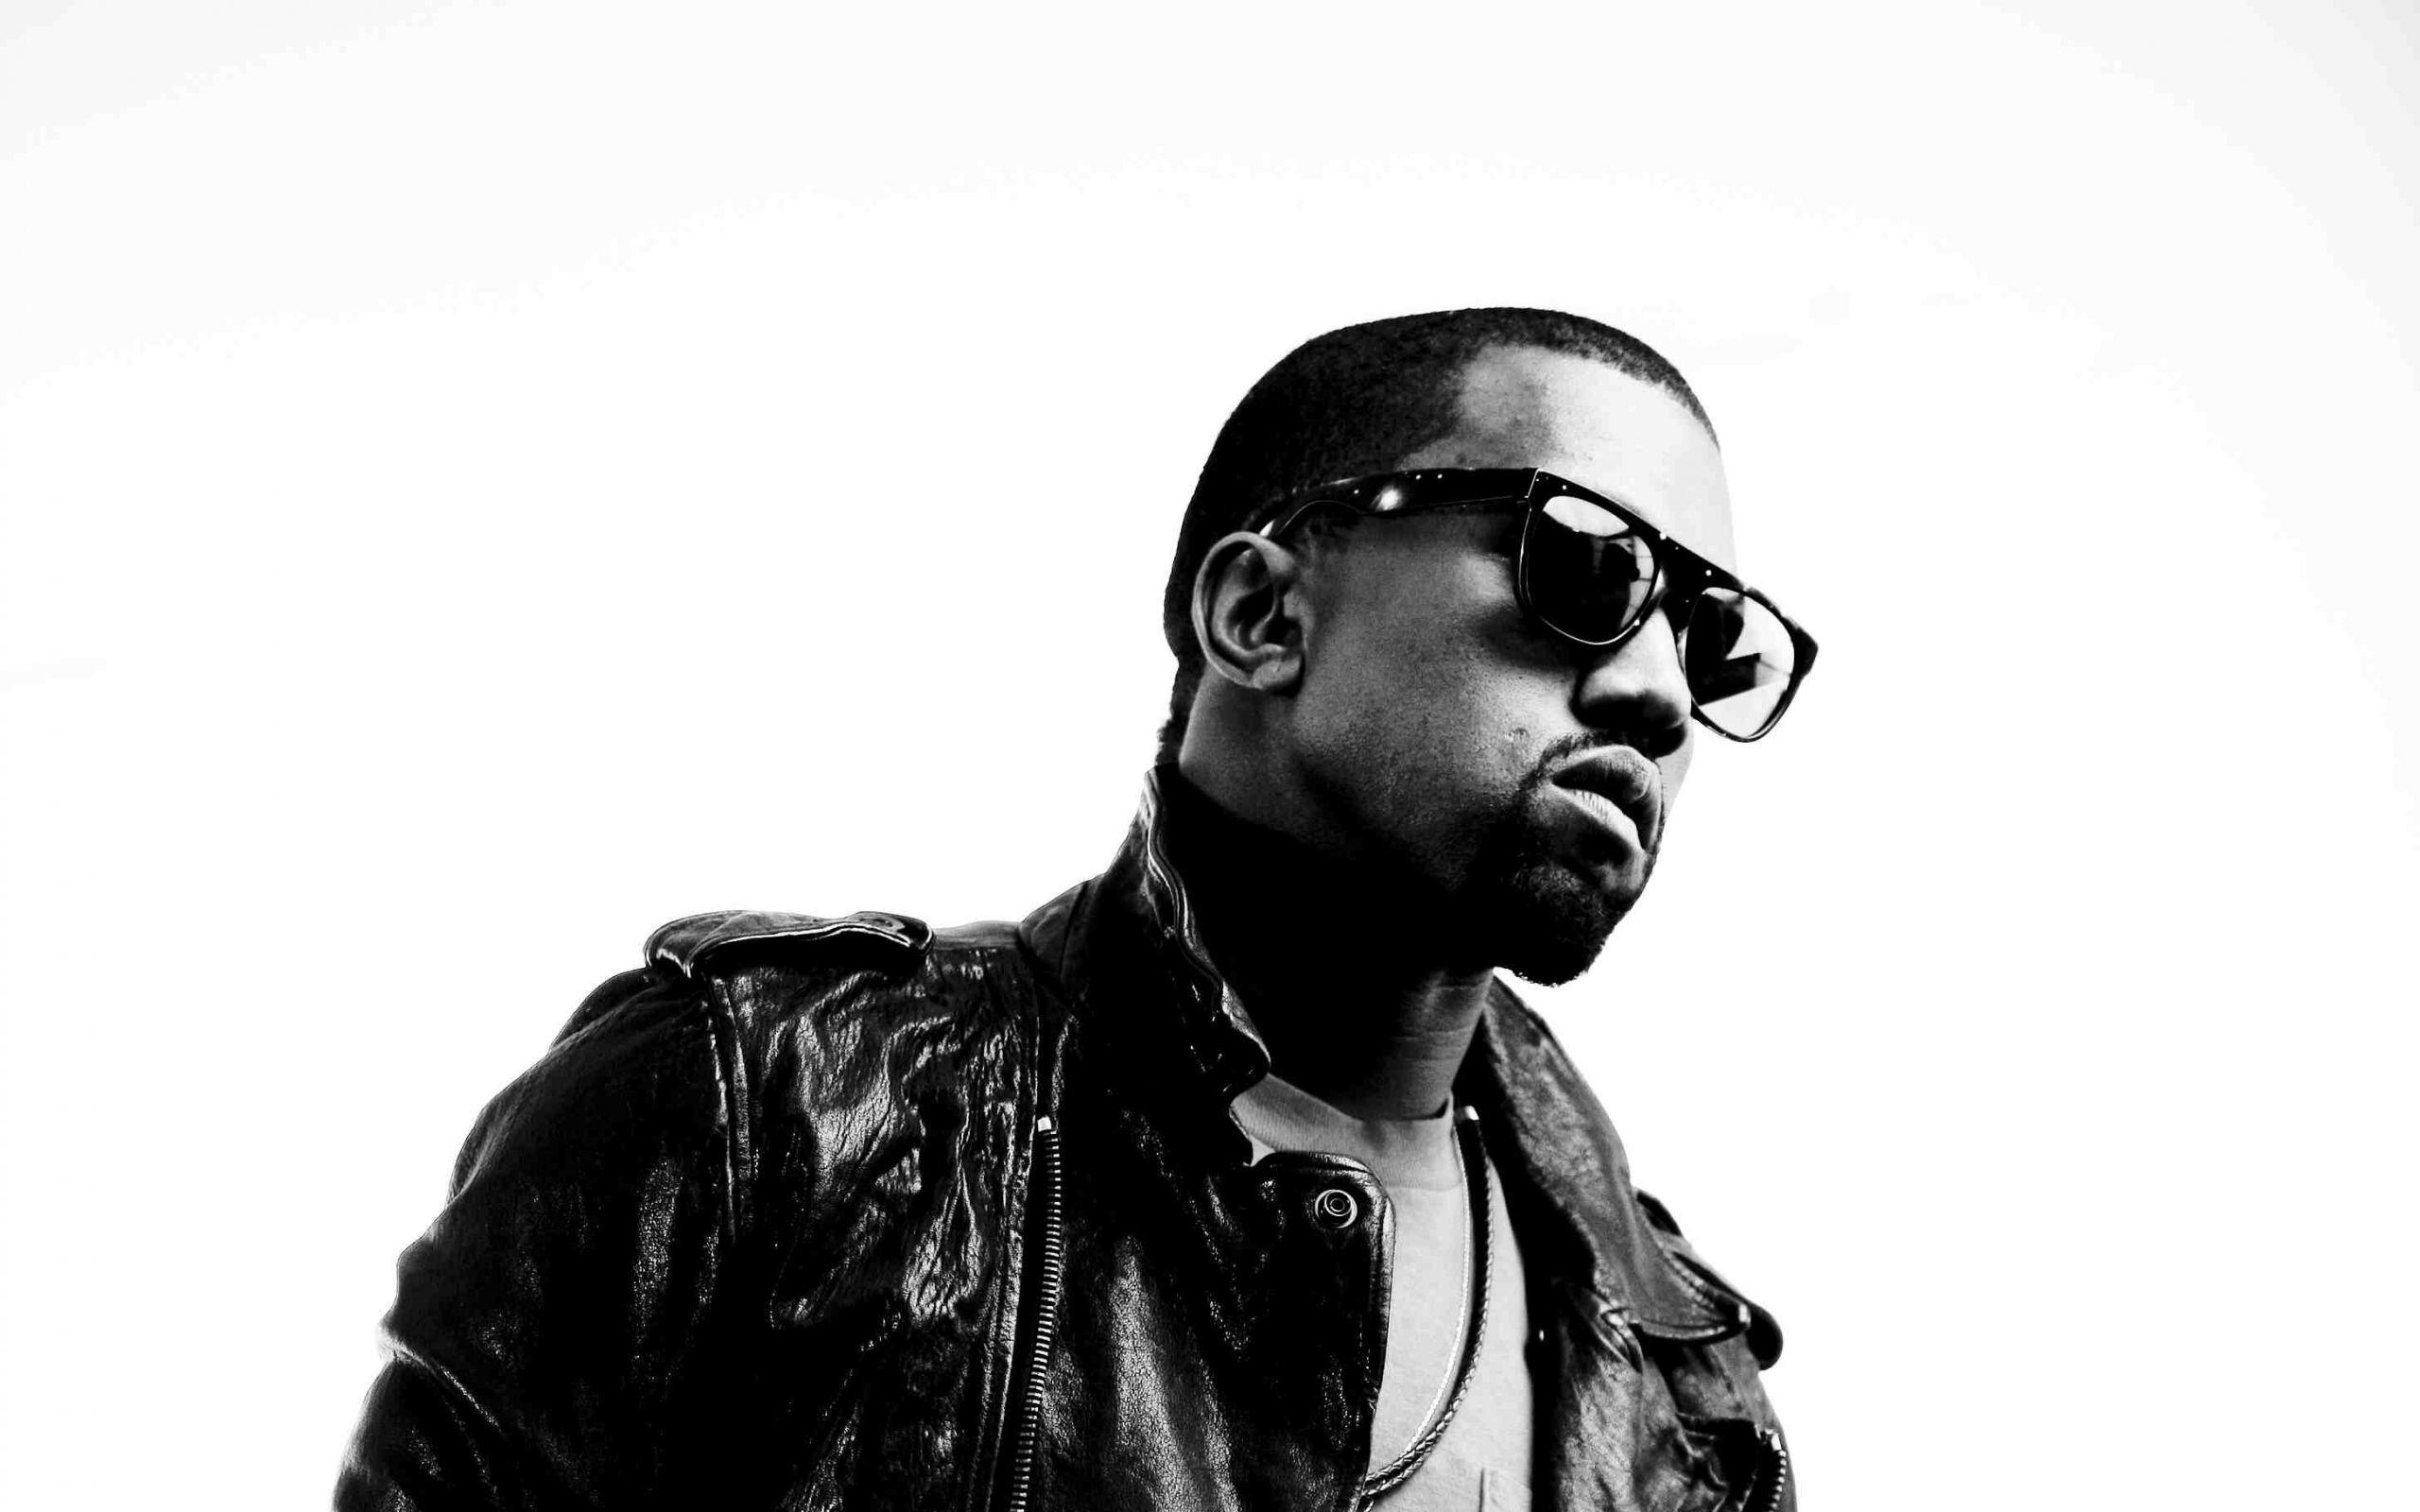 Kanye West Best Quality HD Wallpapers - All HD Wallpapers